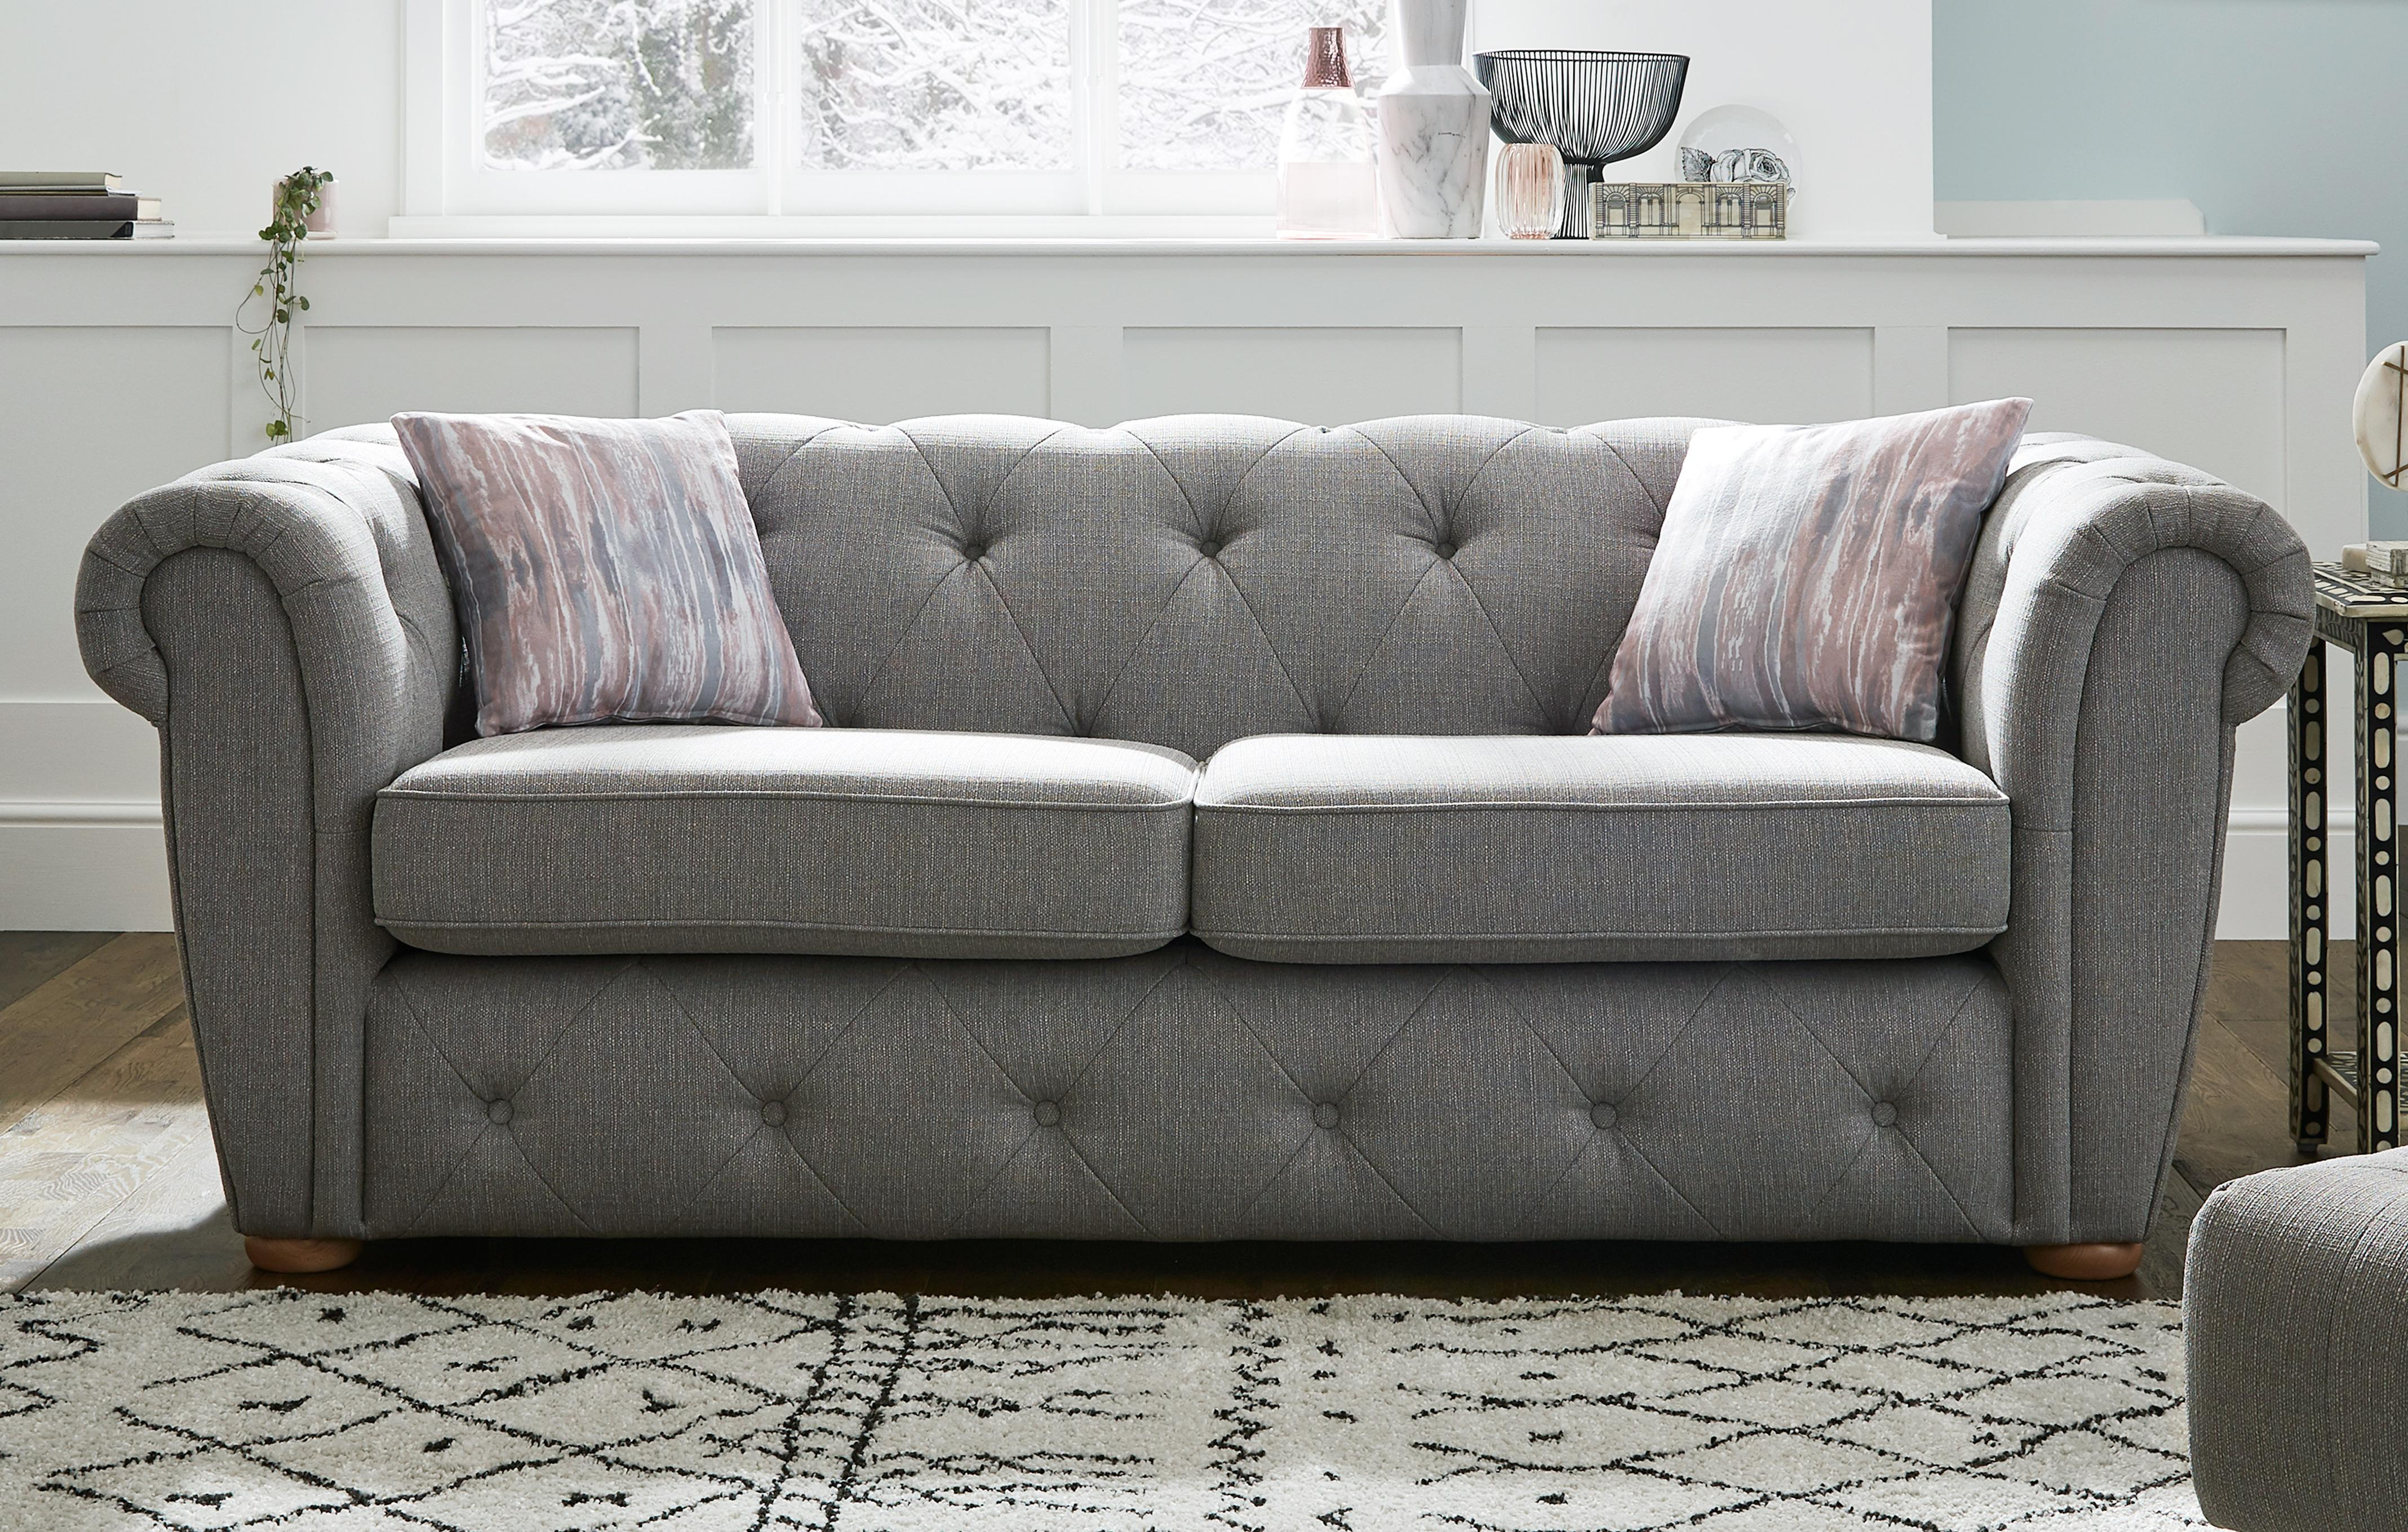 cheap sofa sets under 500 fillmore arhaus fabric sofas that are perfect for your home dfs